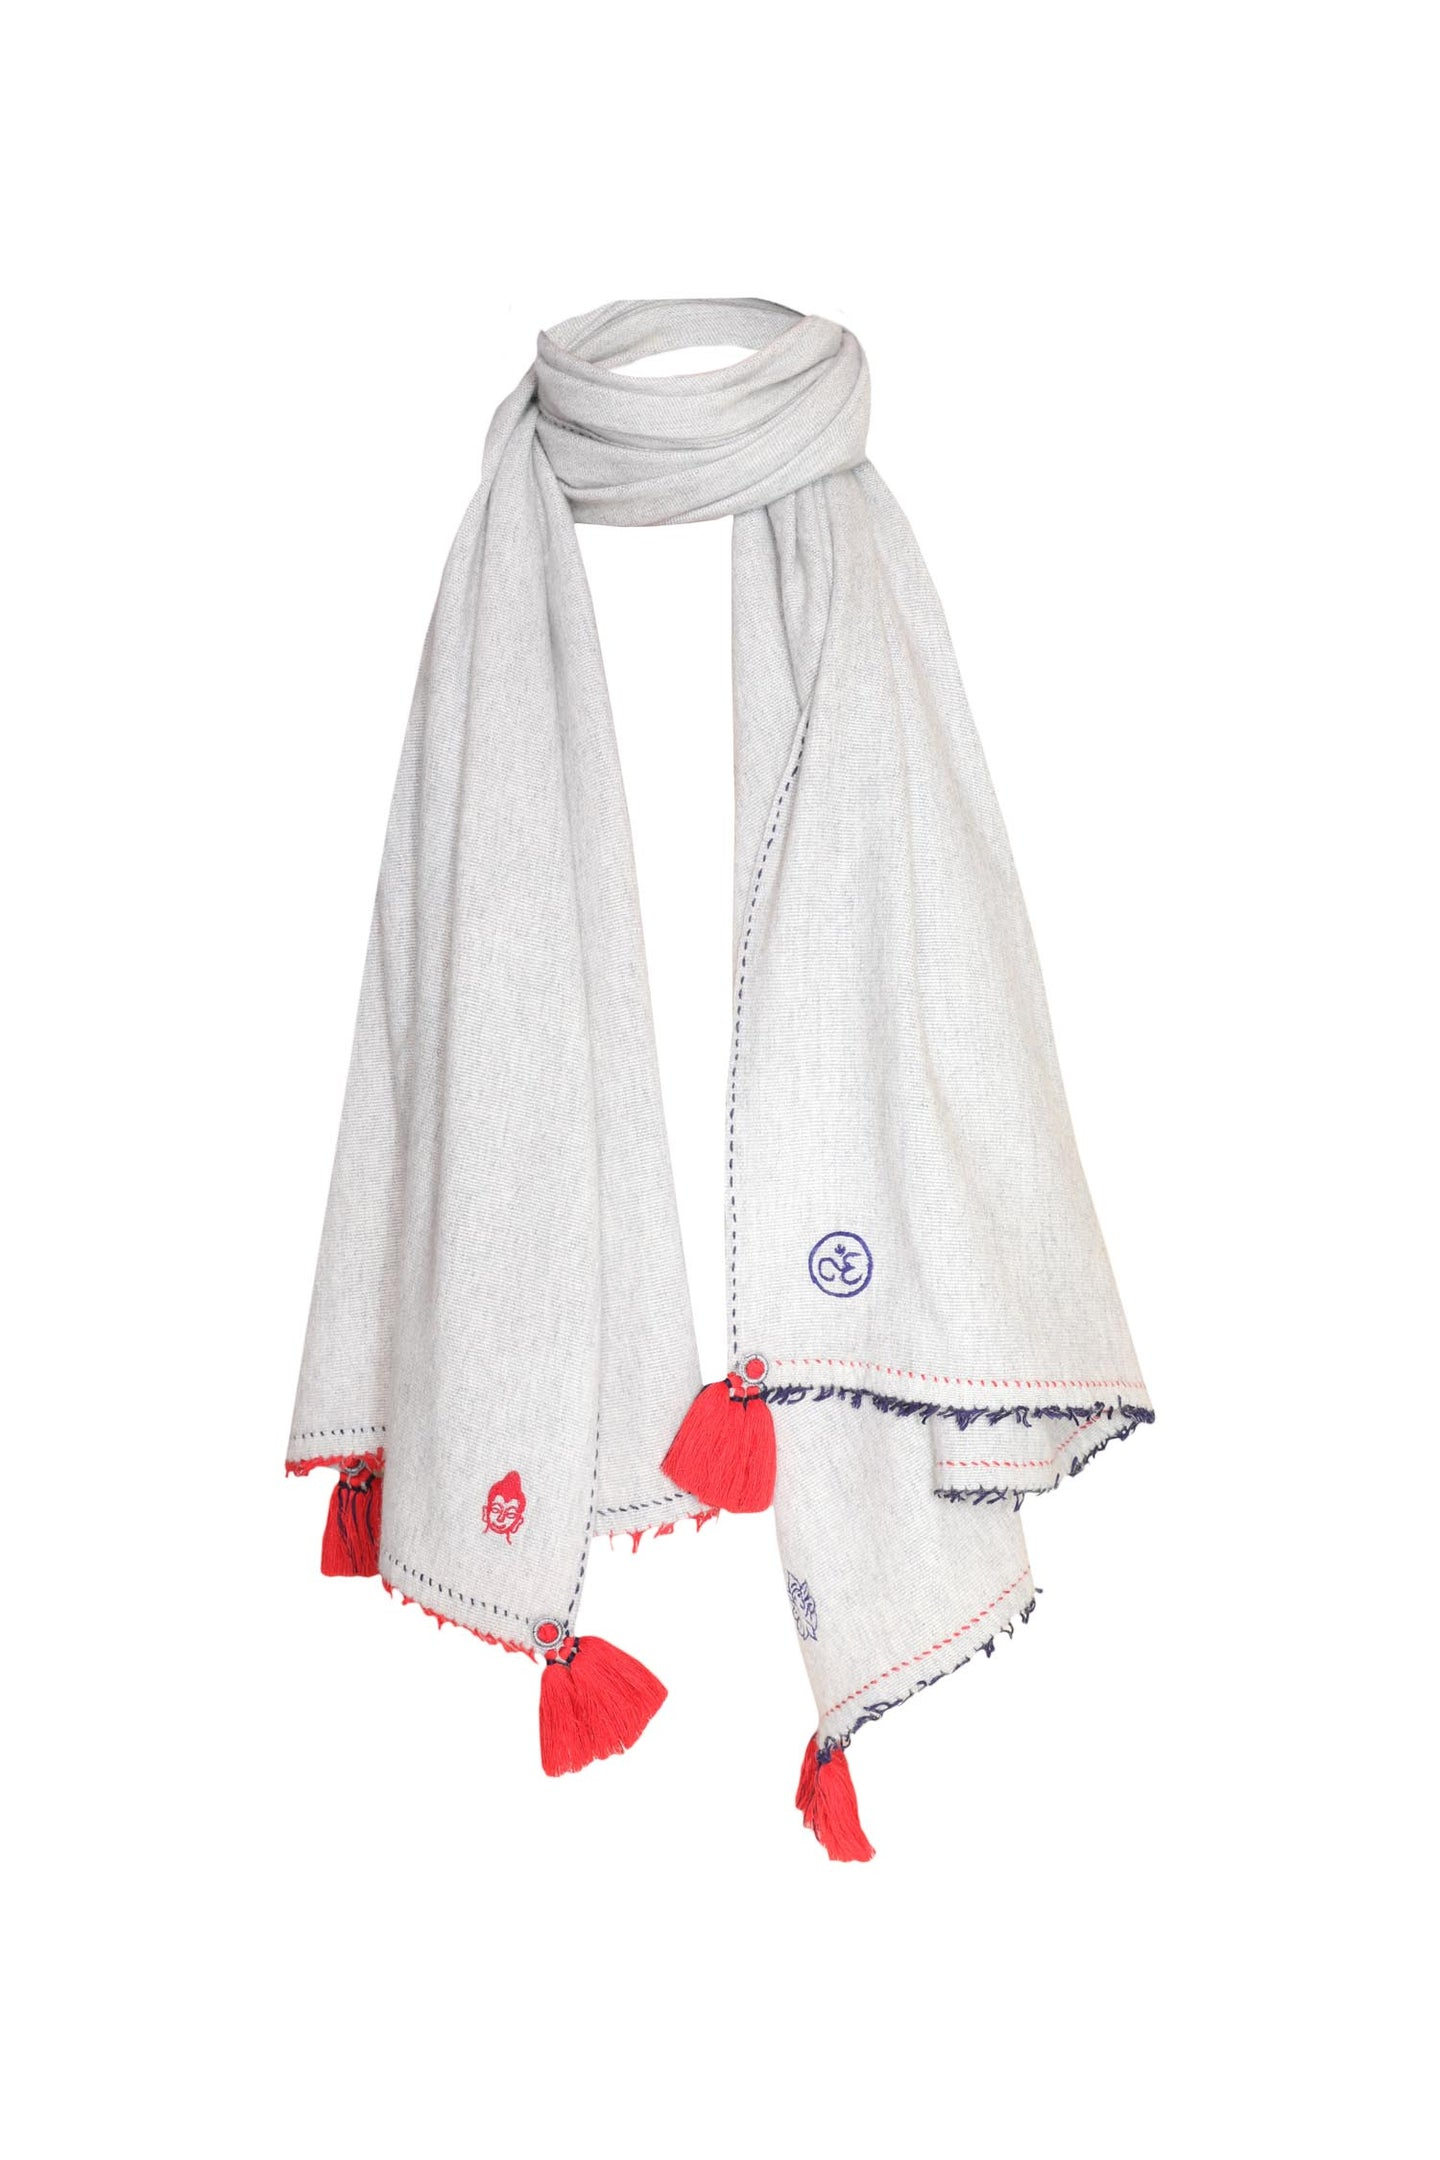 Meditation Shawl - Light Grey with Red Tassels